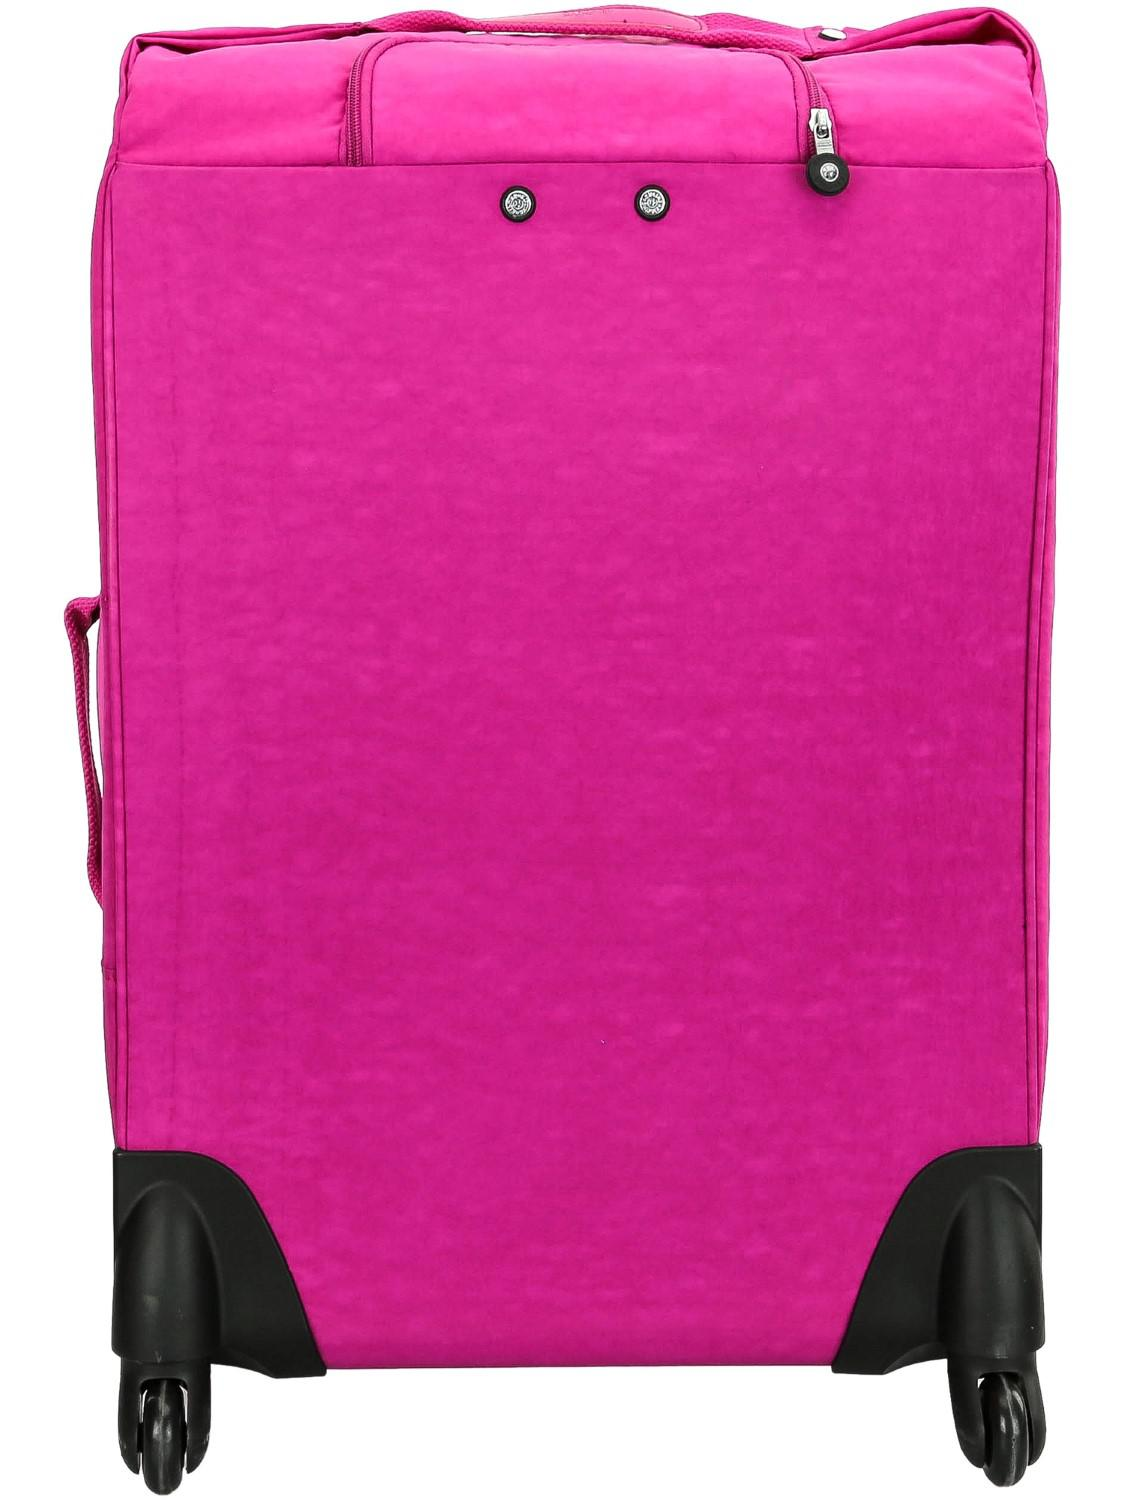 62e9aa69cab Kipling Darcy Wheeled Carry-on Bag Suitcase Wl4767-485 in Pink - Lyst